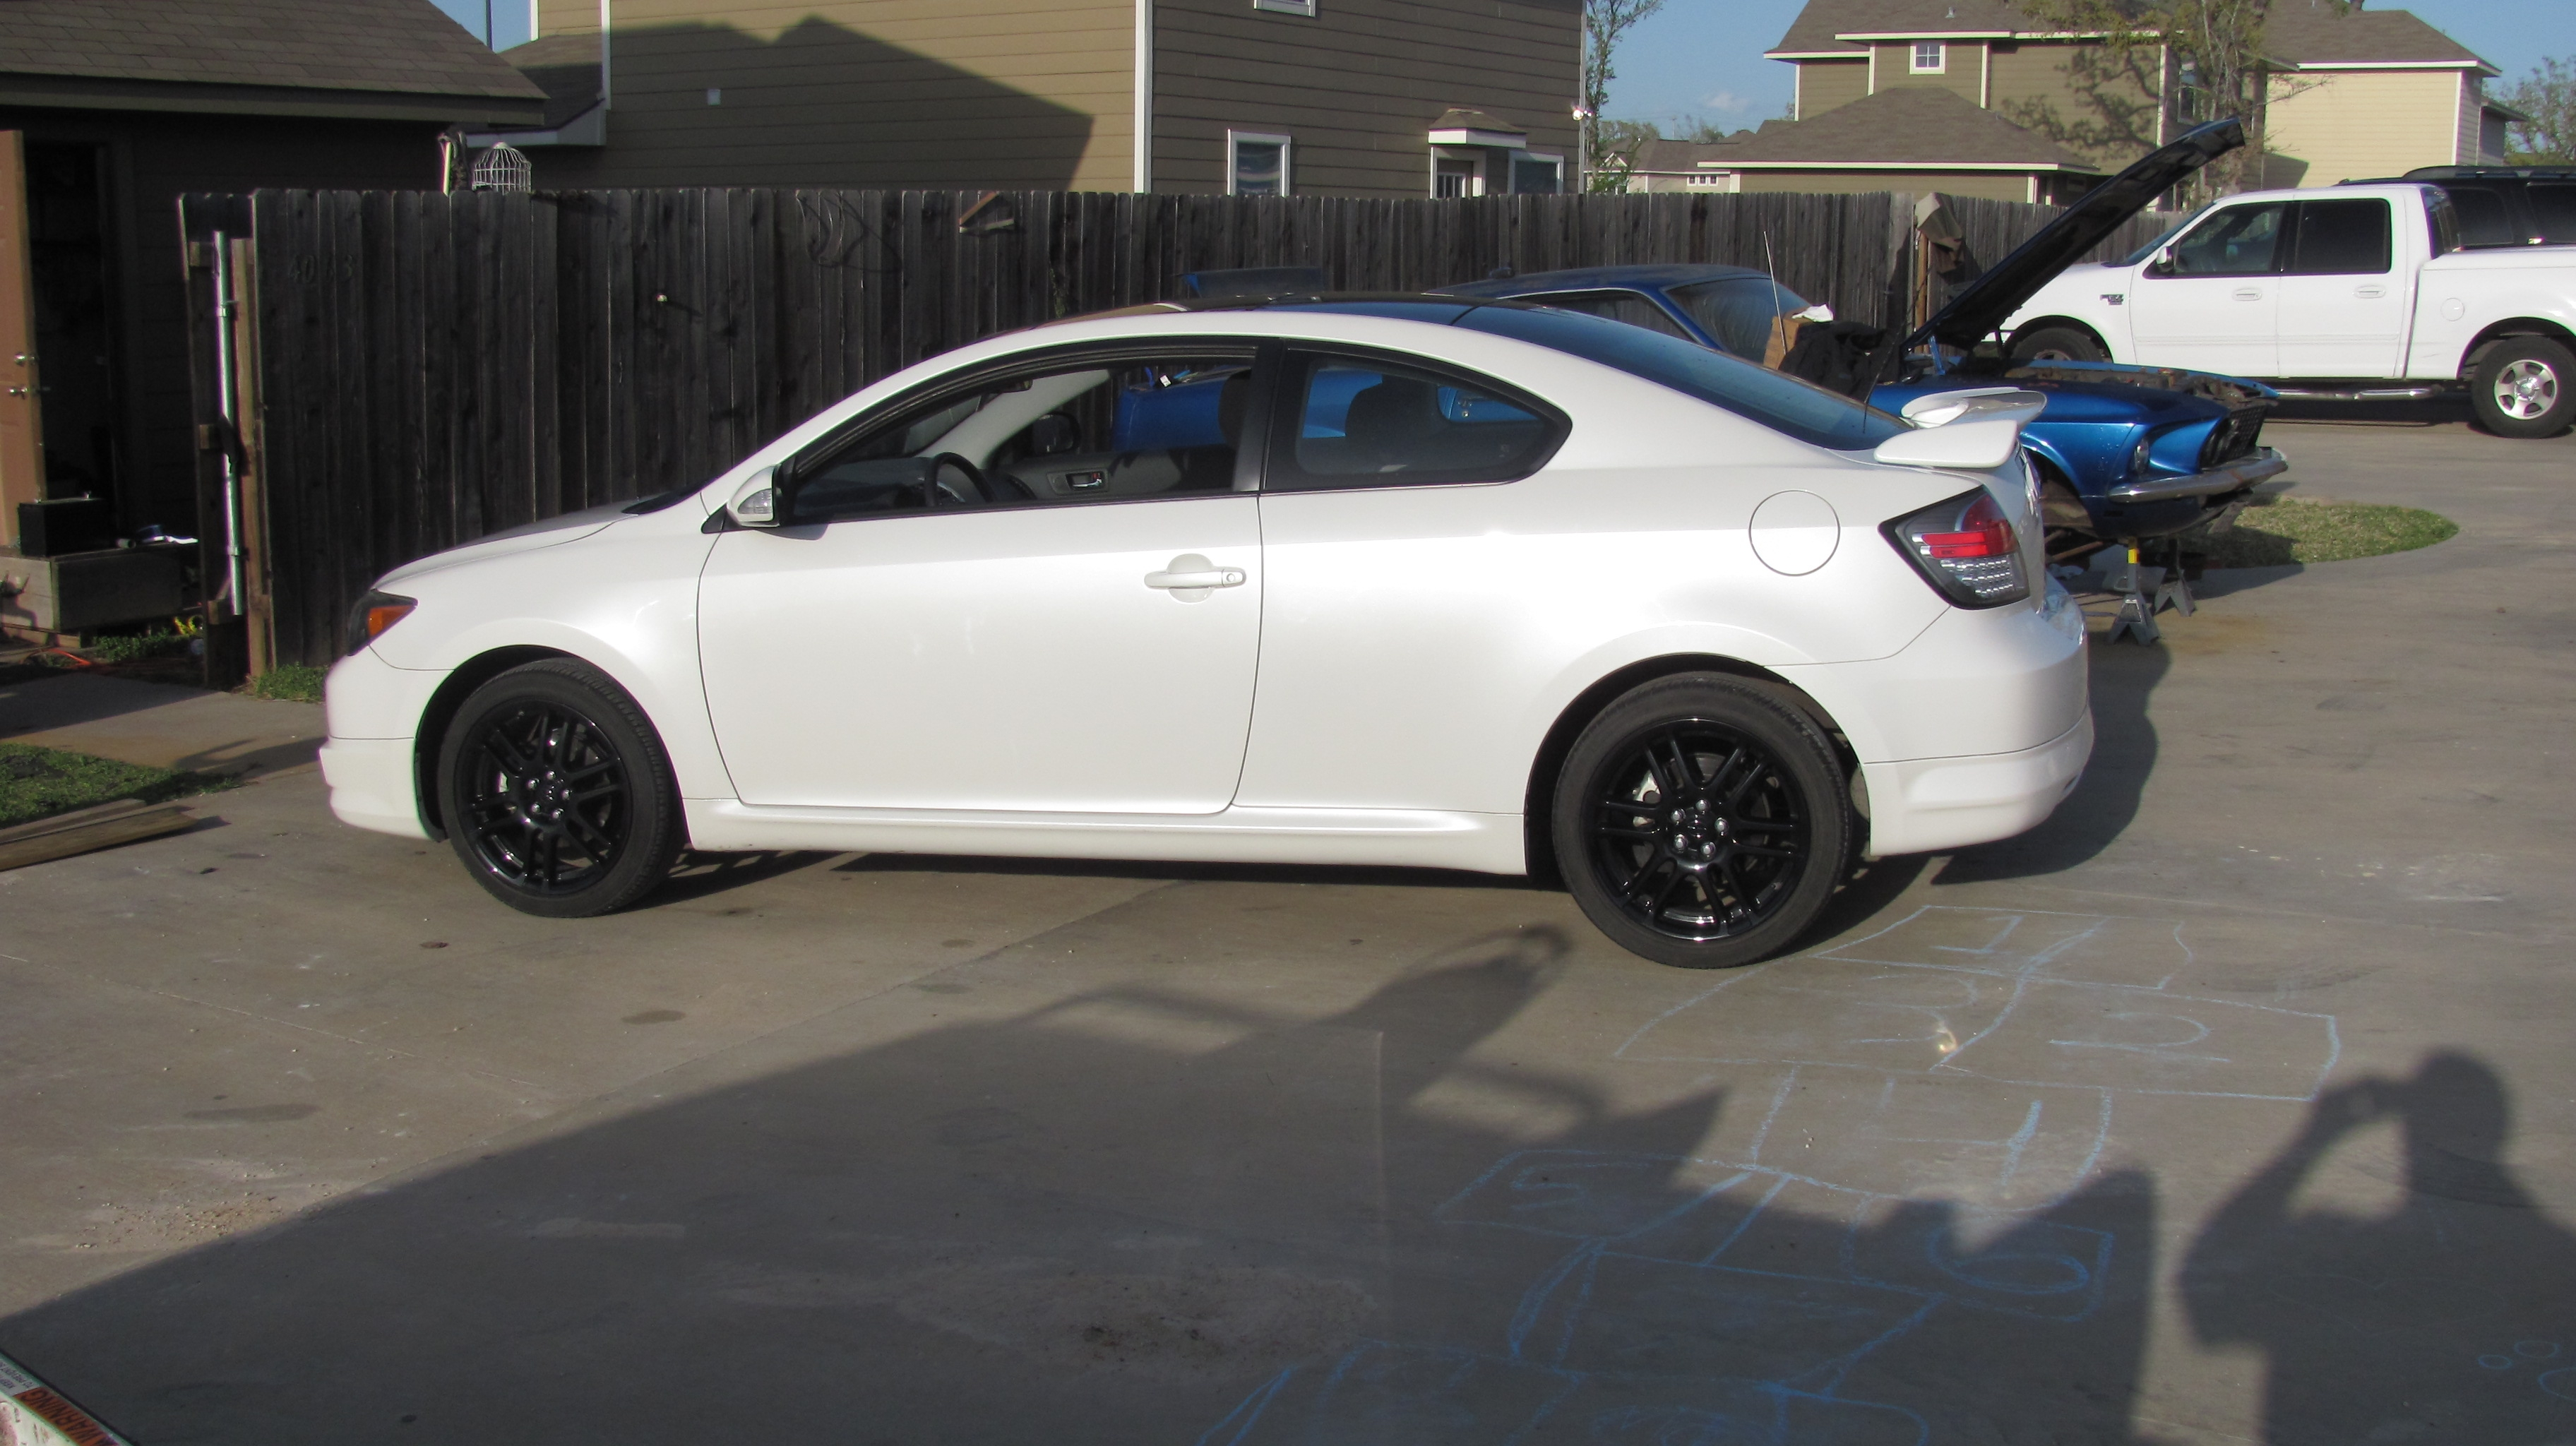 alfredobaca 2007 Scion TCSpec Hatchback Coupe 2D Specs, Photos ...